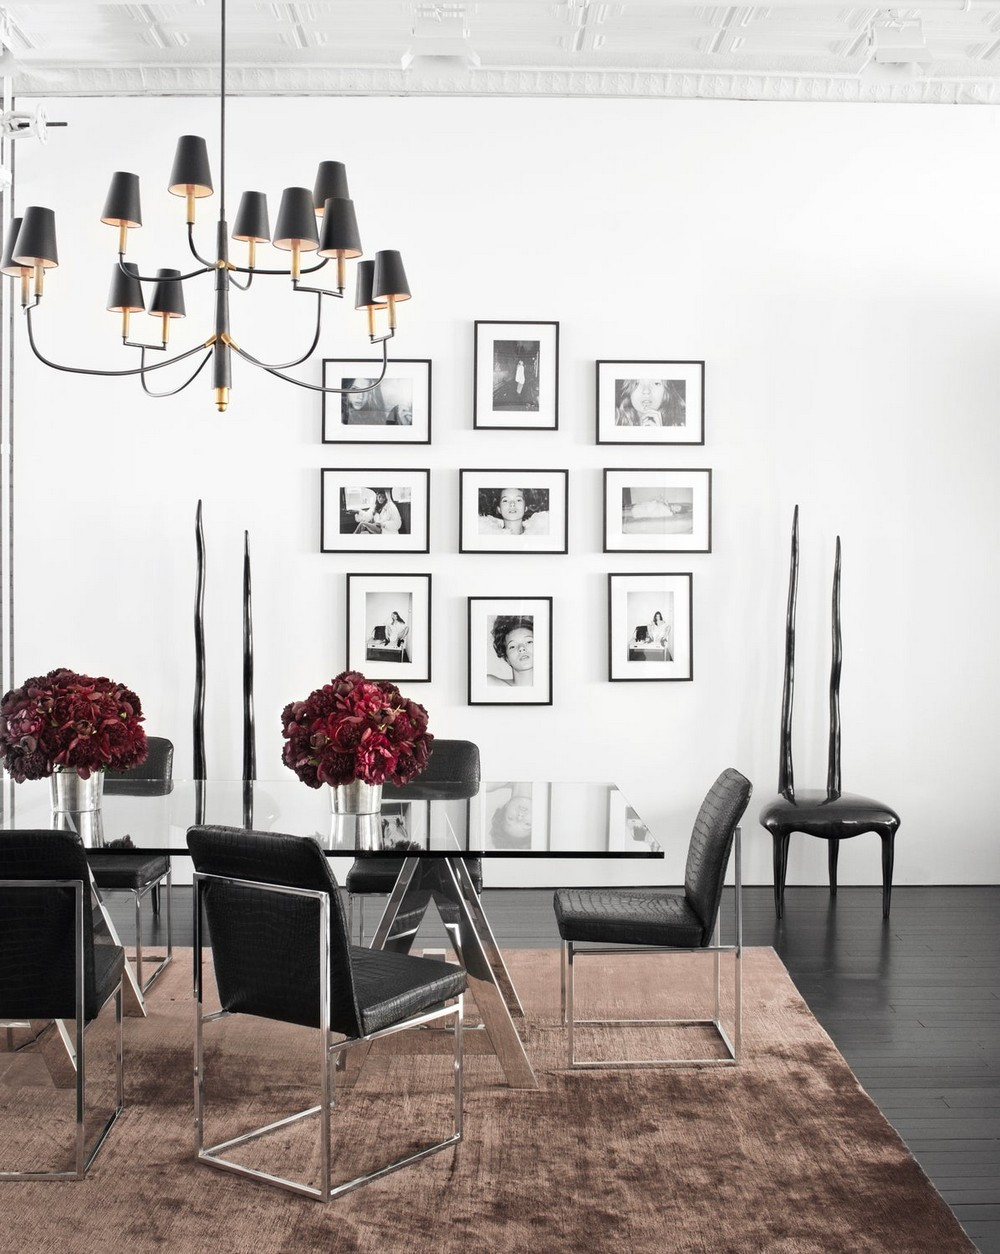 Luxury, Old-world Romance and Urban Cool: Dining Rooms by Ryan Korban ryan korban Luxury, Old-world Romance and Urban Cool: Dining Rooms by Ryan Korban 5 1stDibs